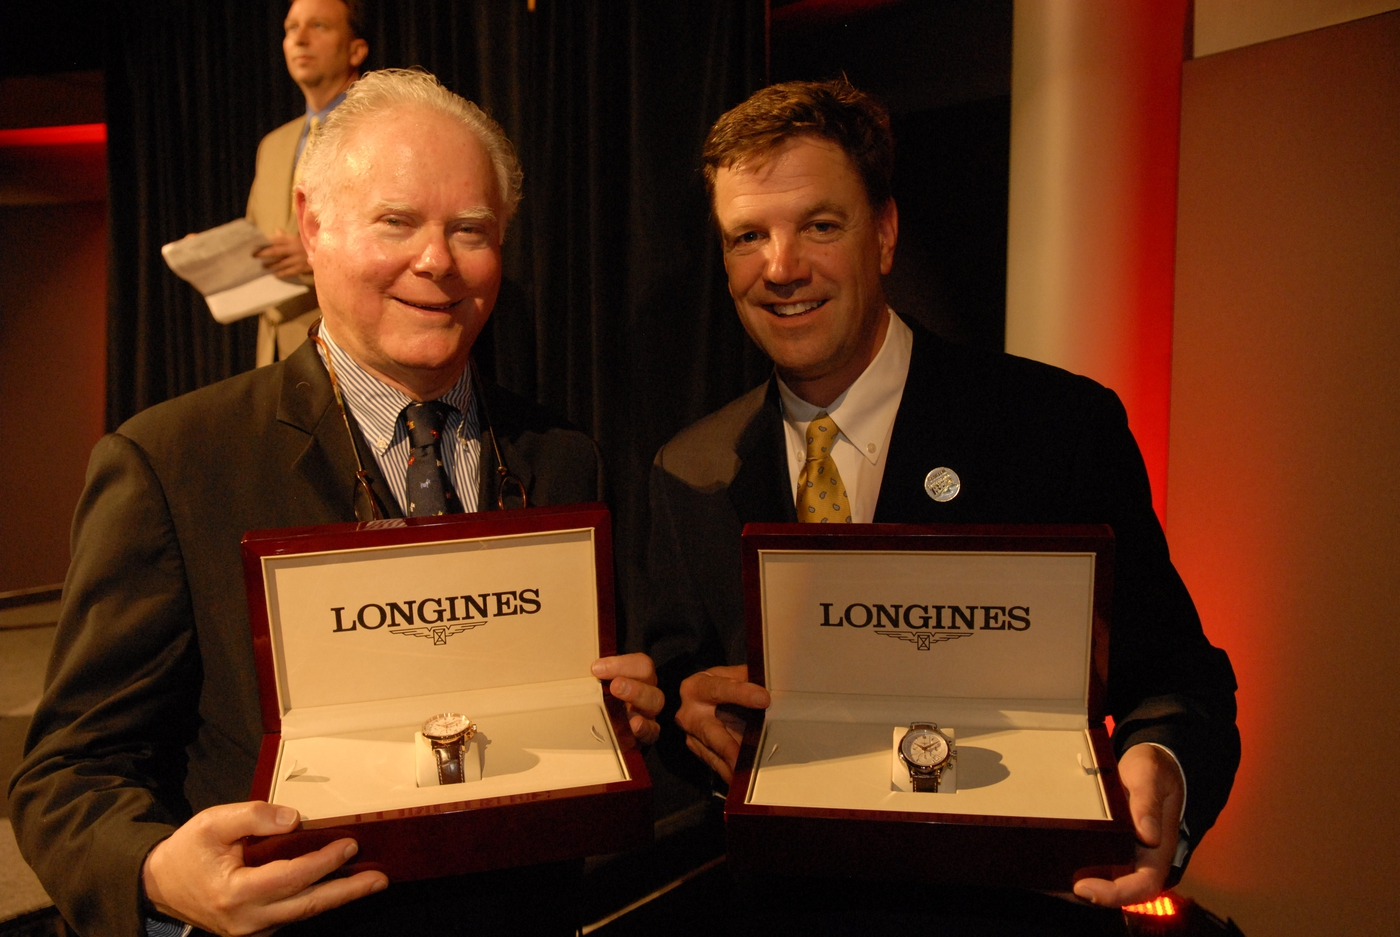 Longines Flat Racing Event: LONGINES WATCHES PRESENTED TO OWNER, TRAINER AND JOCKEY OF KENTUCKY DERBY WINNER 8